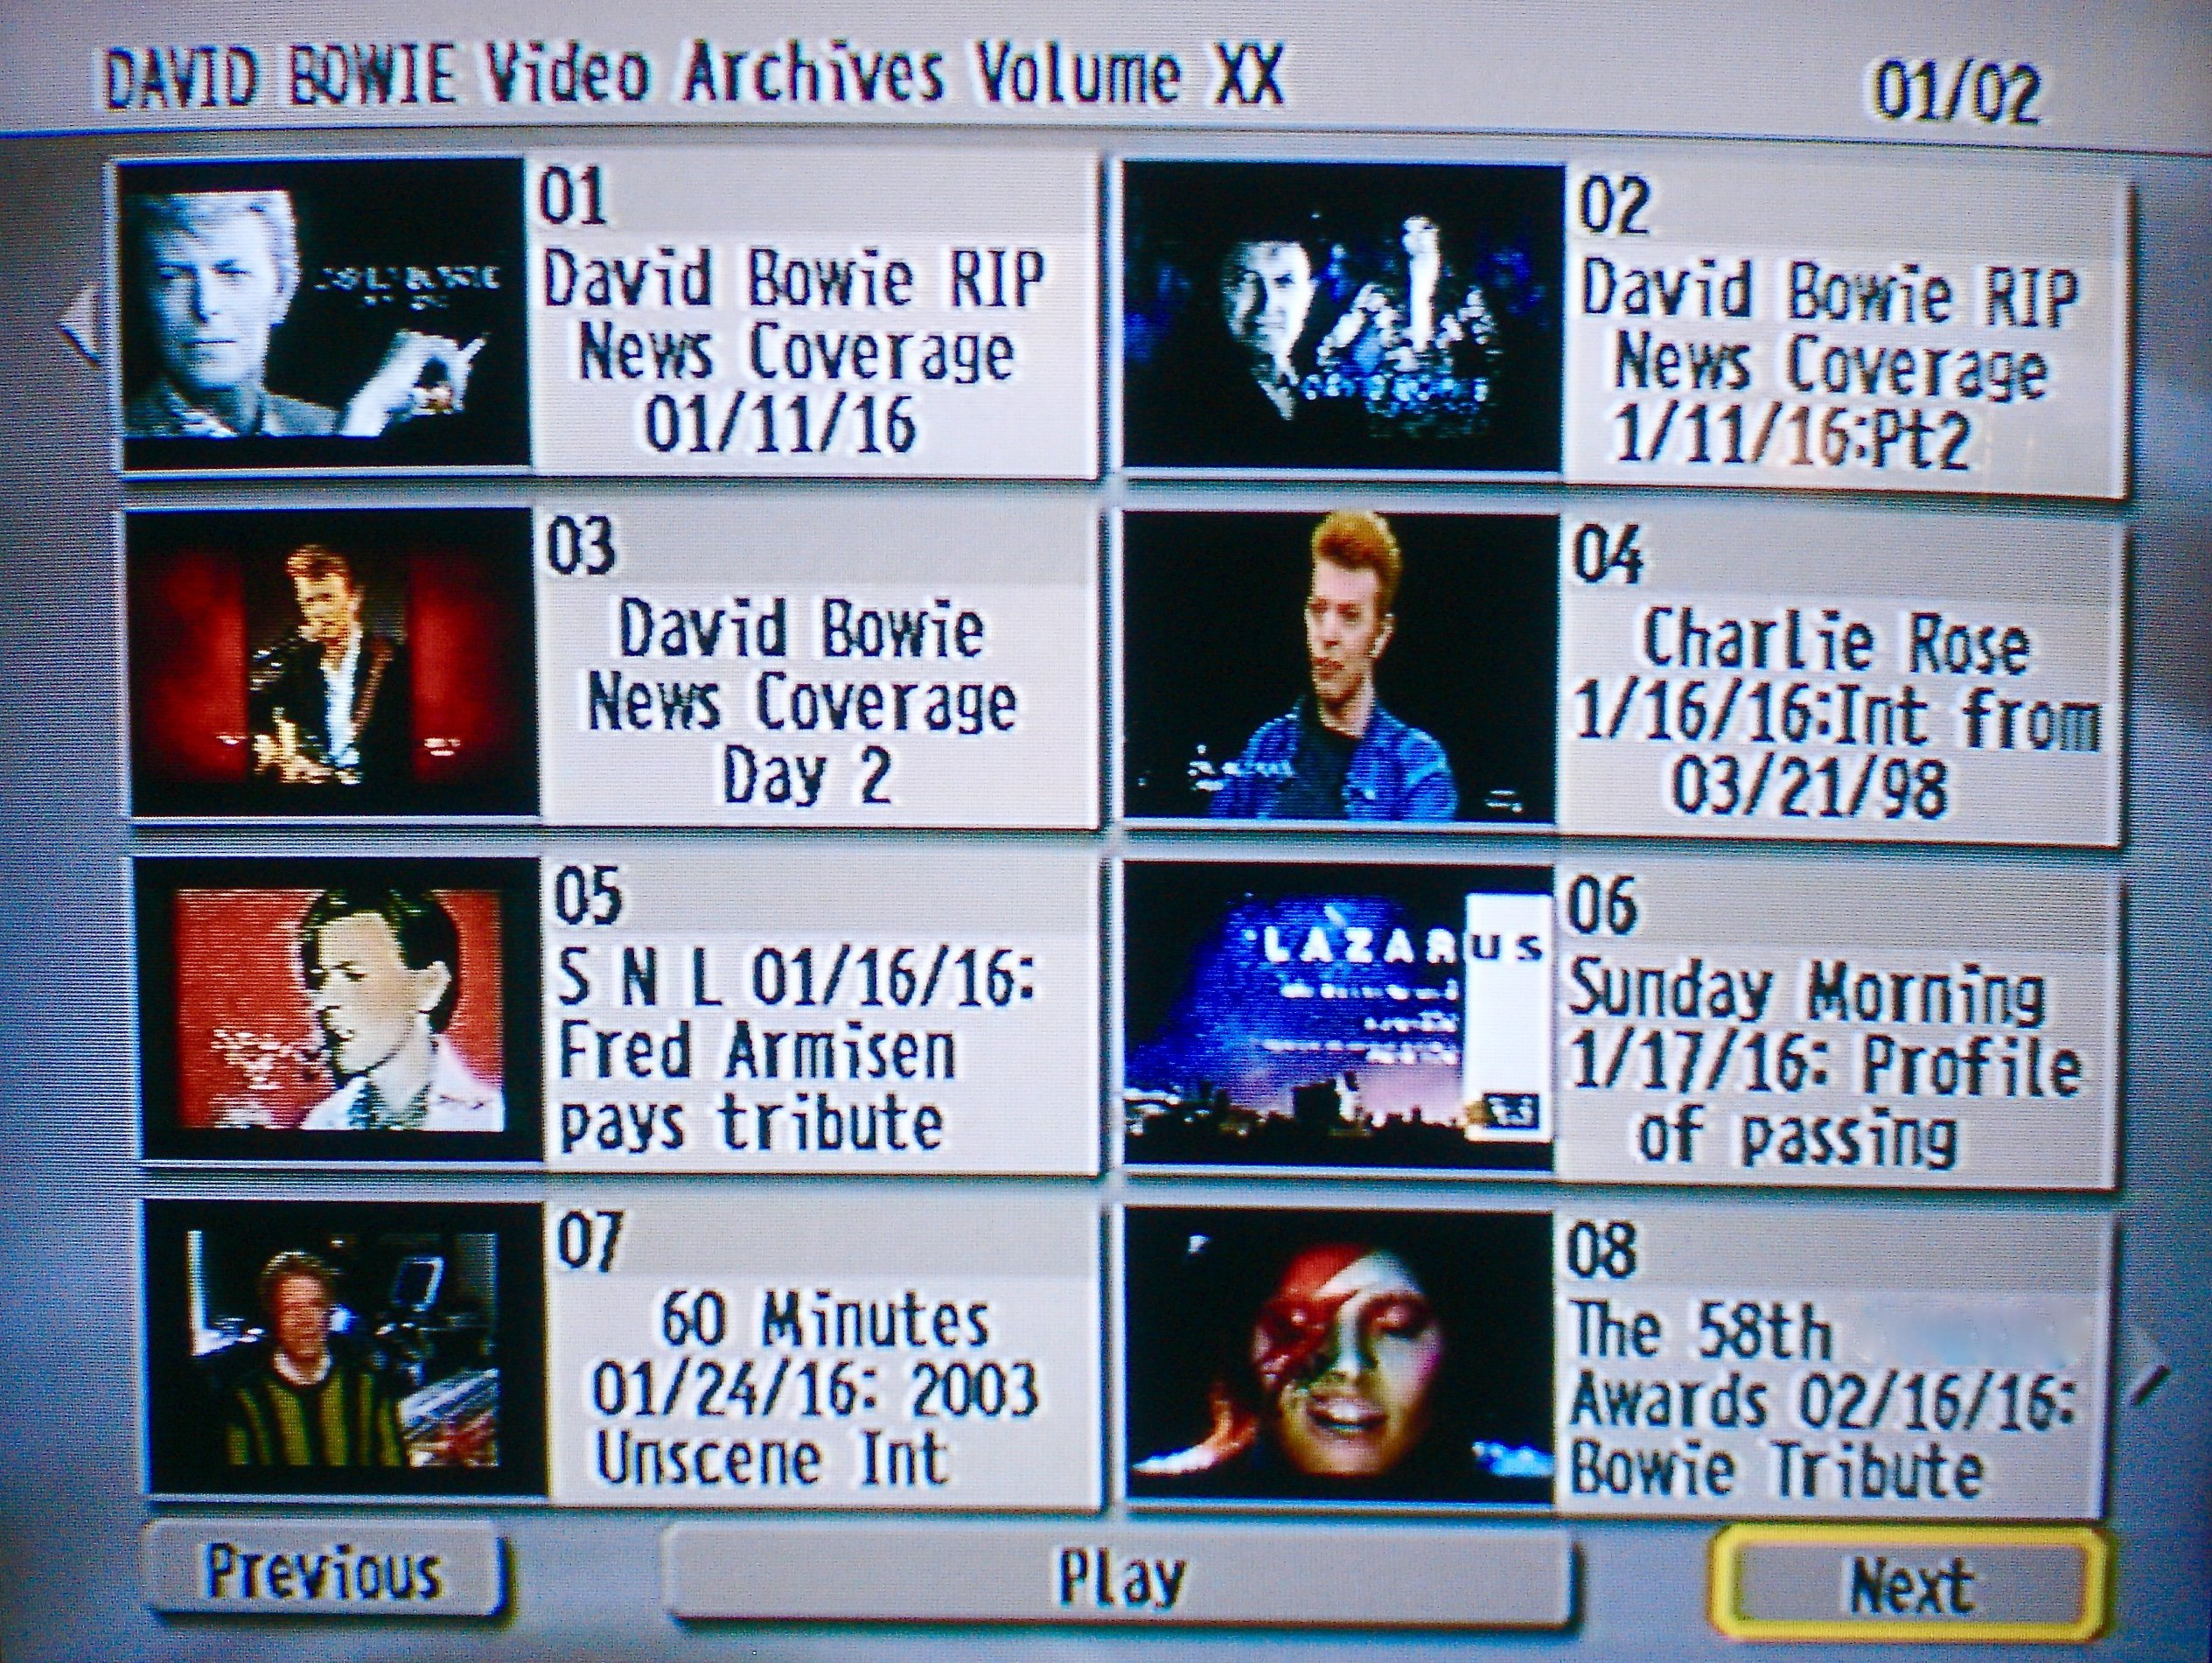 David Bowie The Video Archives Retrospective Collection 1973-2017 21 DVD  Set (41 Hours) UPDATED includes tributes to David including Lady Gaga